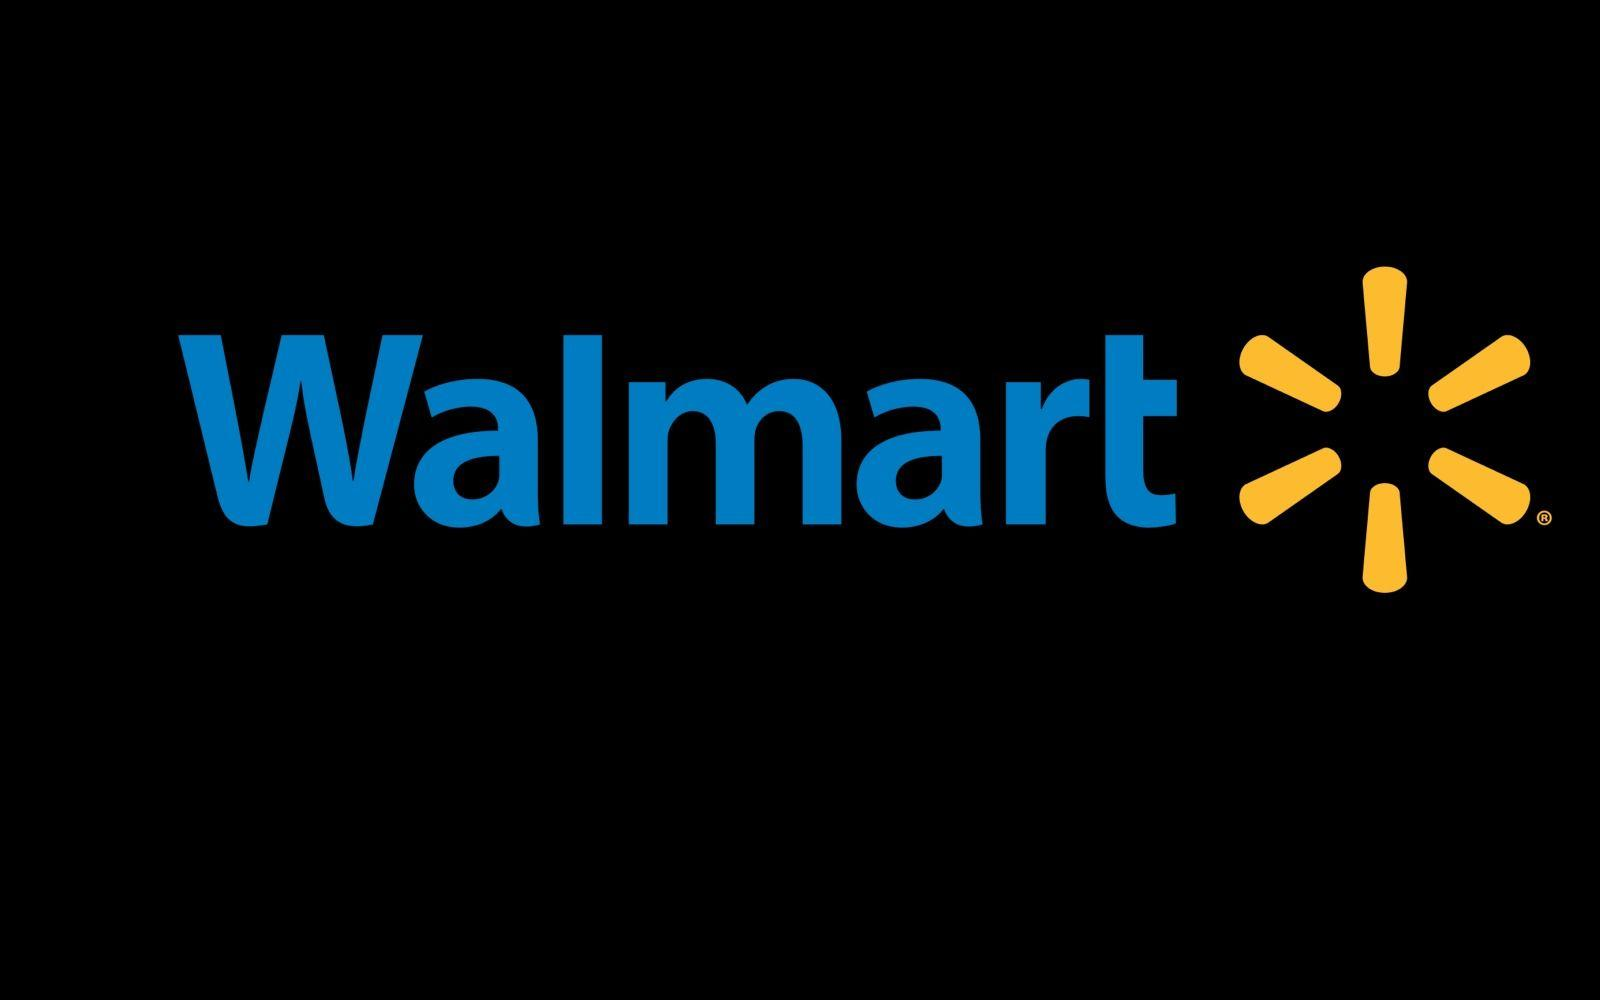 walmart wallpapers wallpaper cave